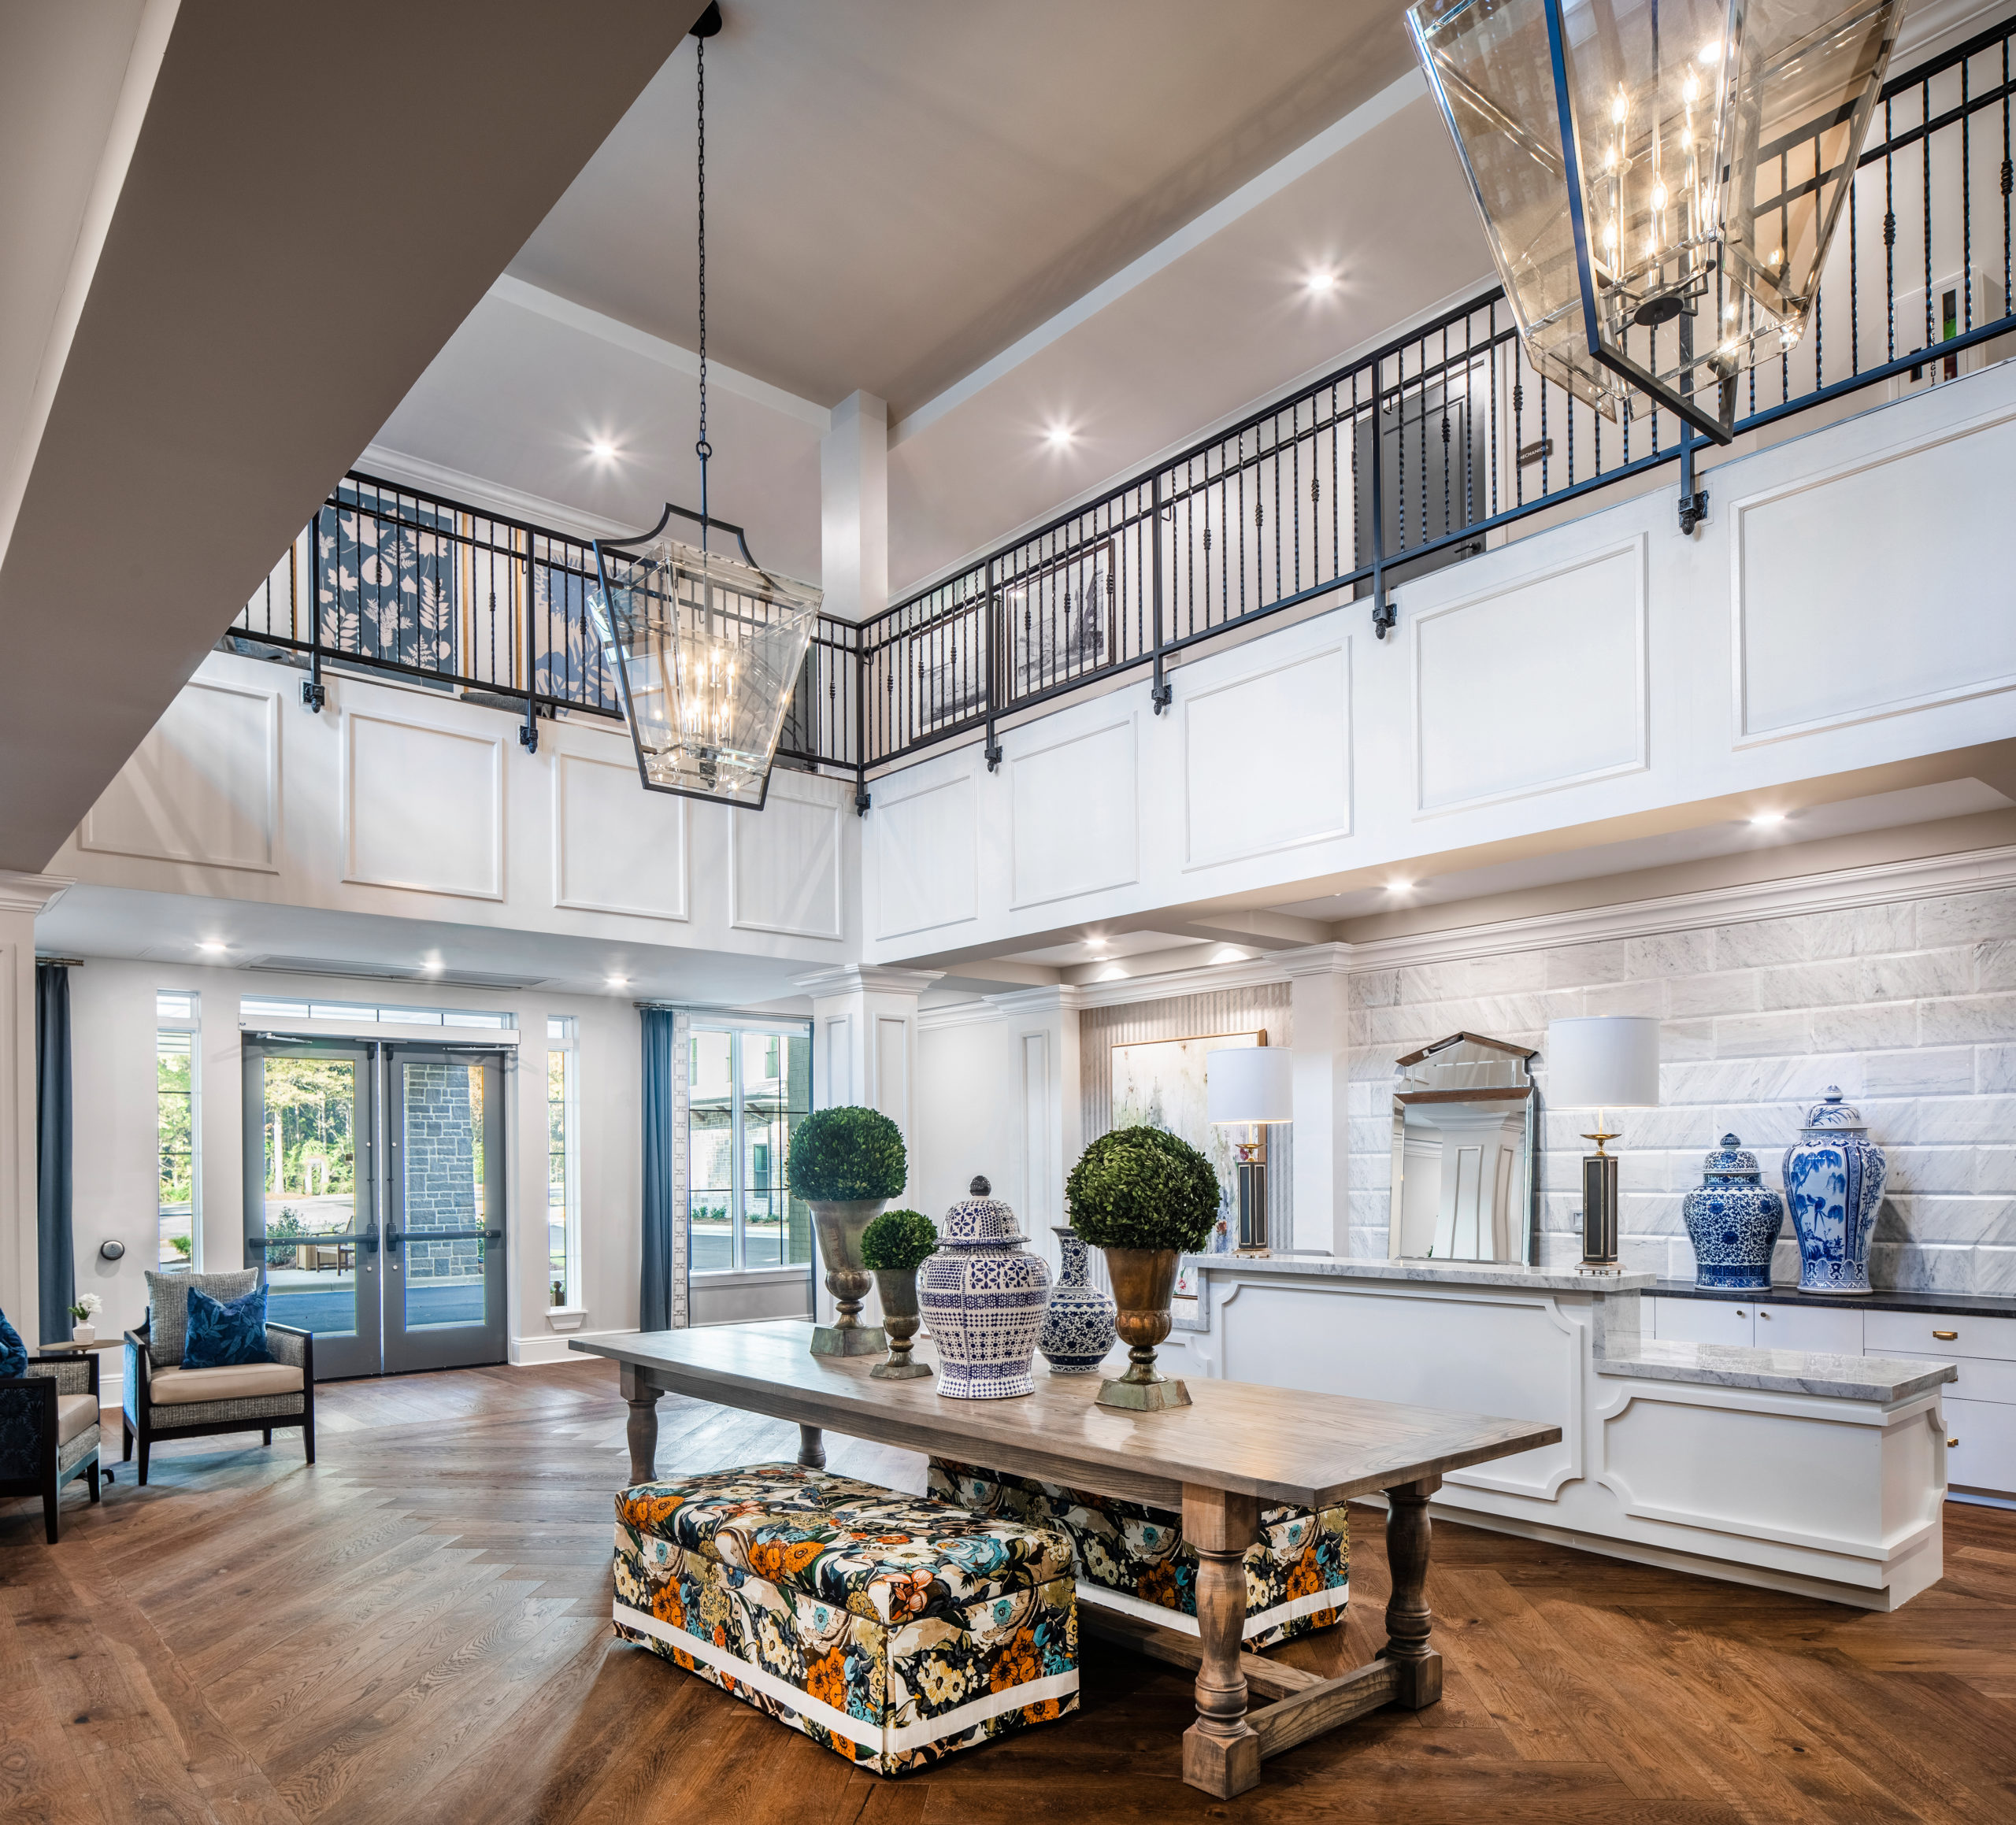 Longleaf foyer looking at entrance to left, white desk at right and long wood table in center holding blue/white vases, greenery in pots and floral benches underneath, and open to second floor above with black metal railing, glass light fixtures